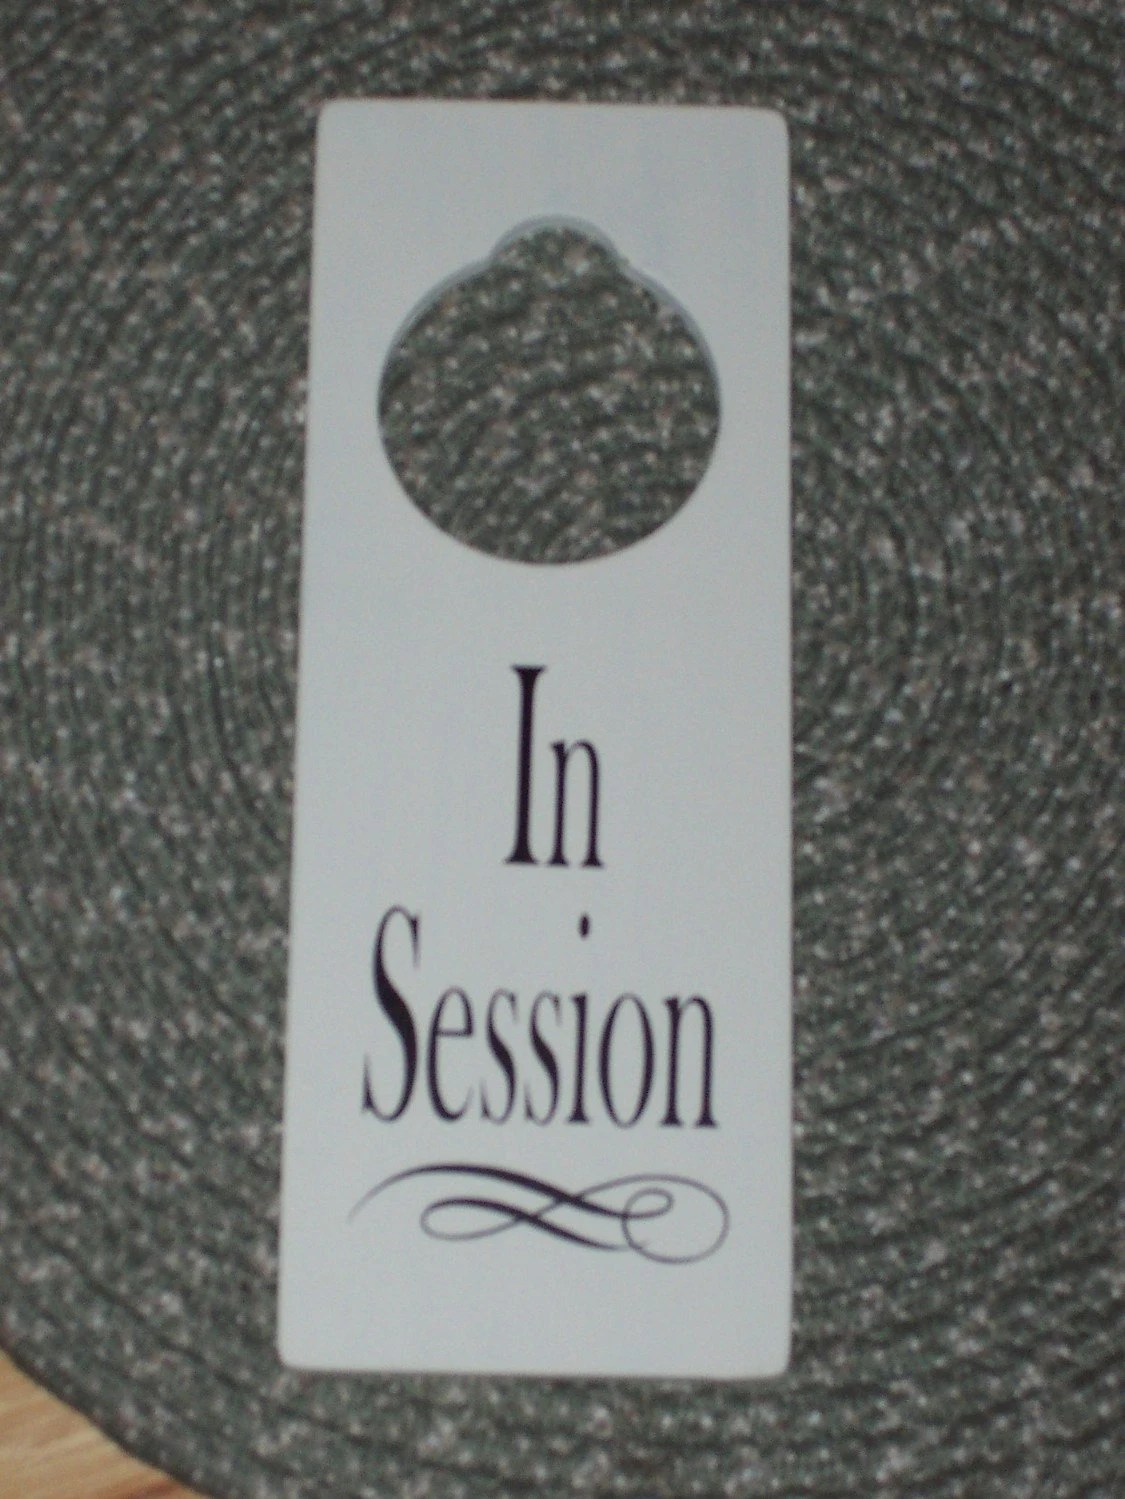 Session In Progress Door Hanger Door Hanger In Session Beautiful - In session door hanger template